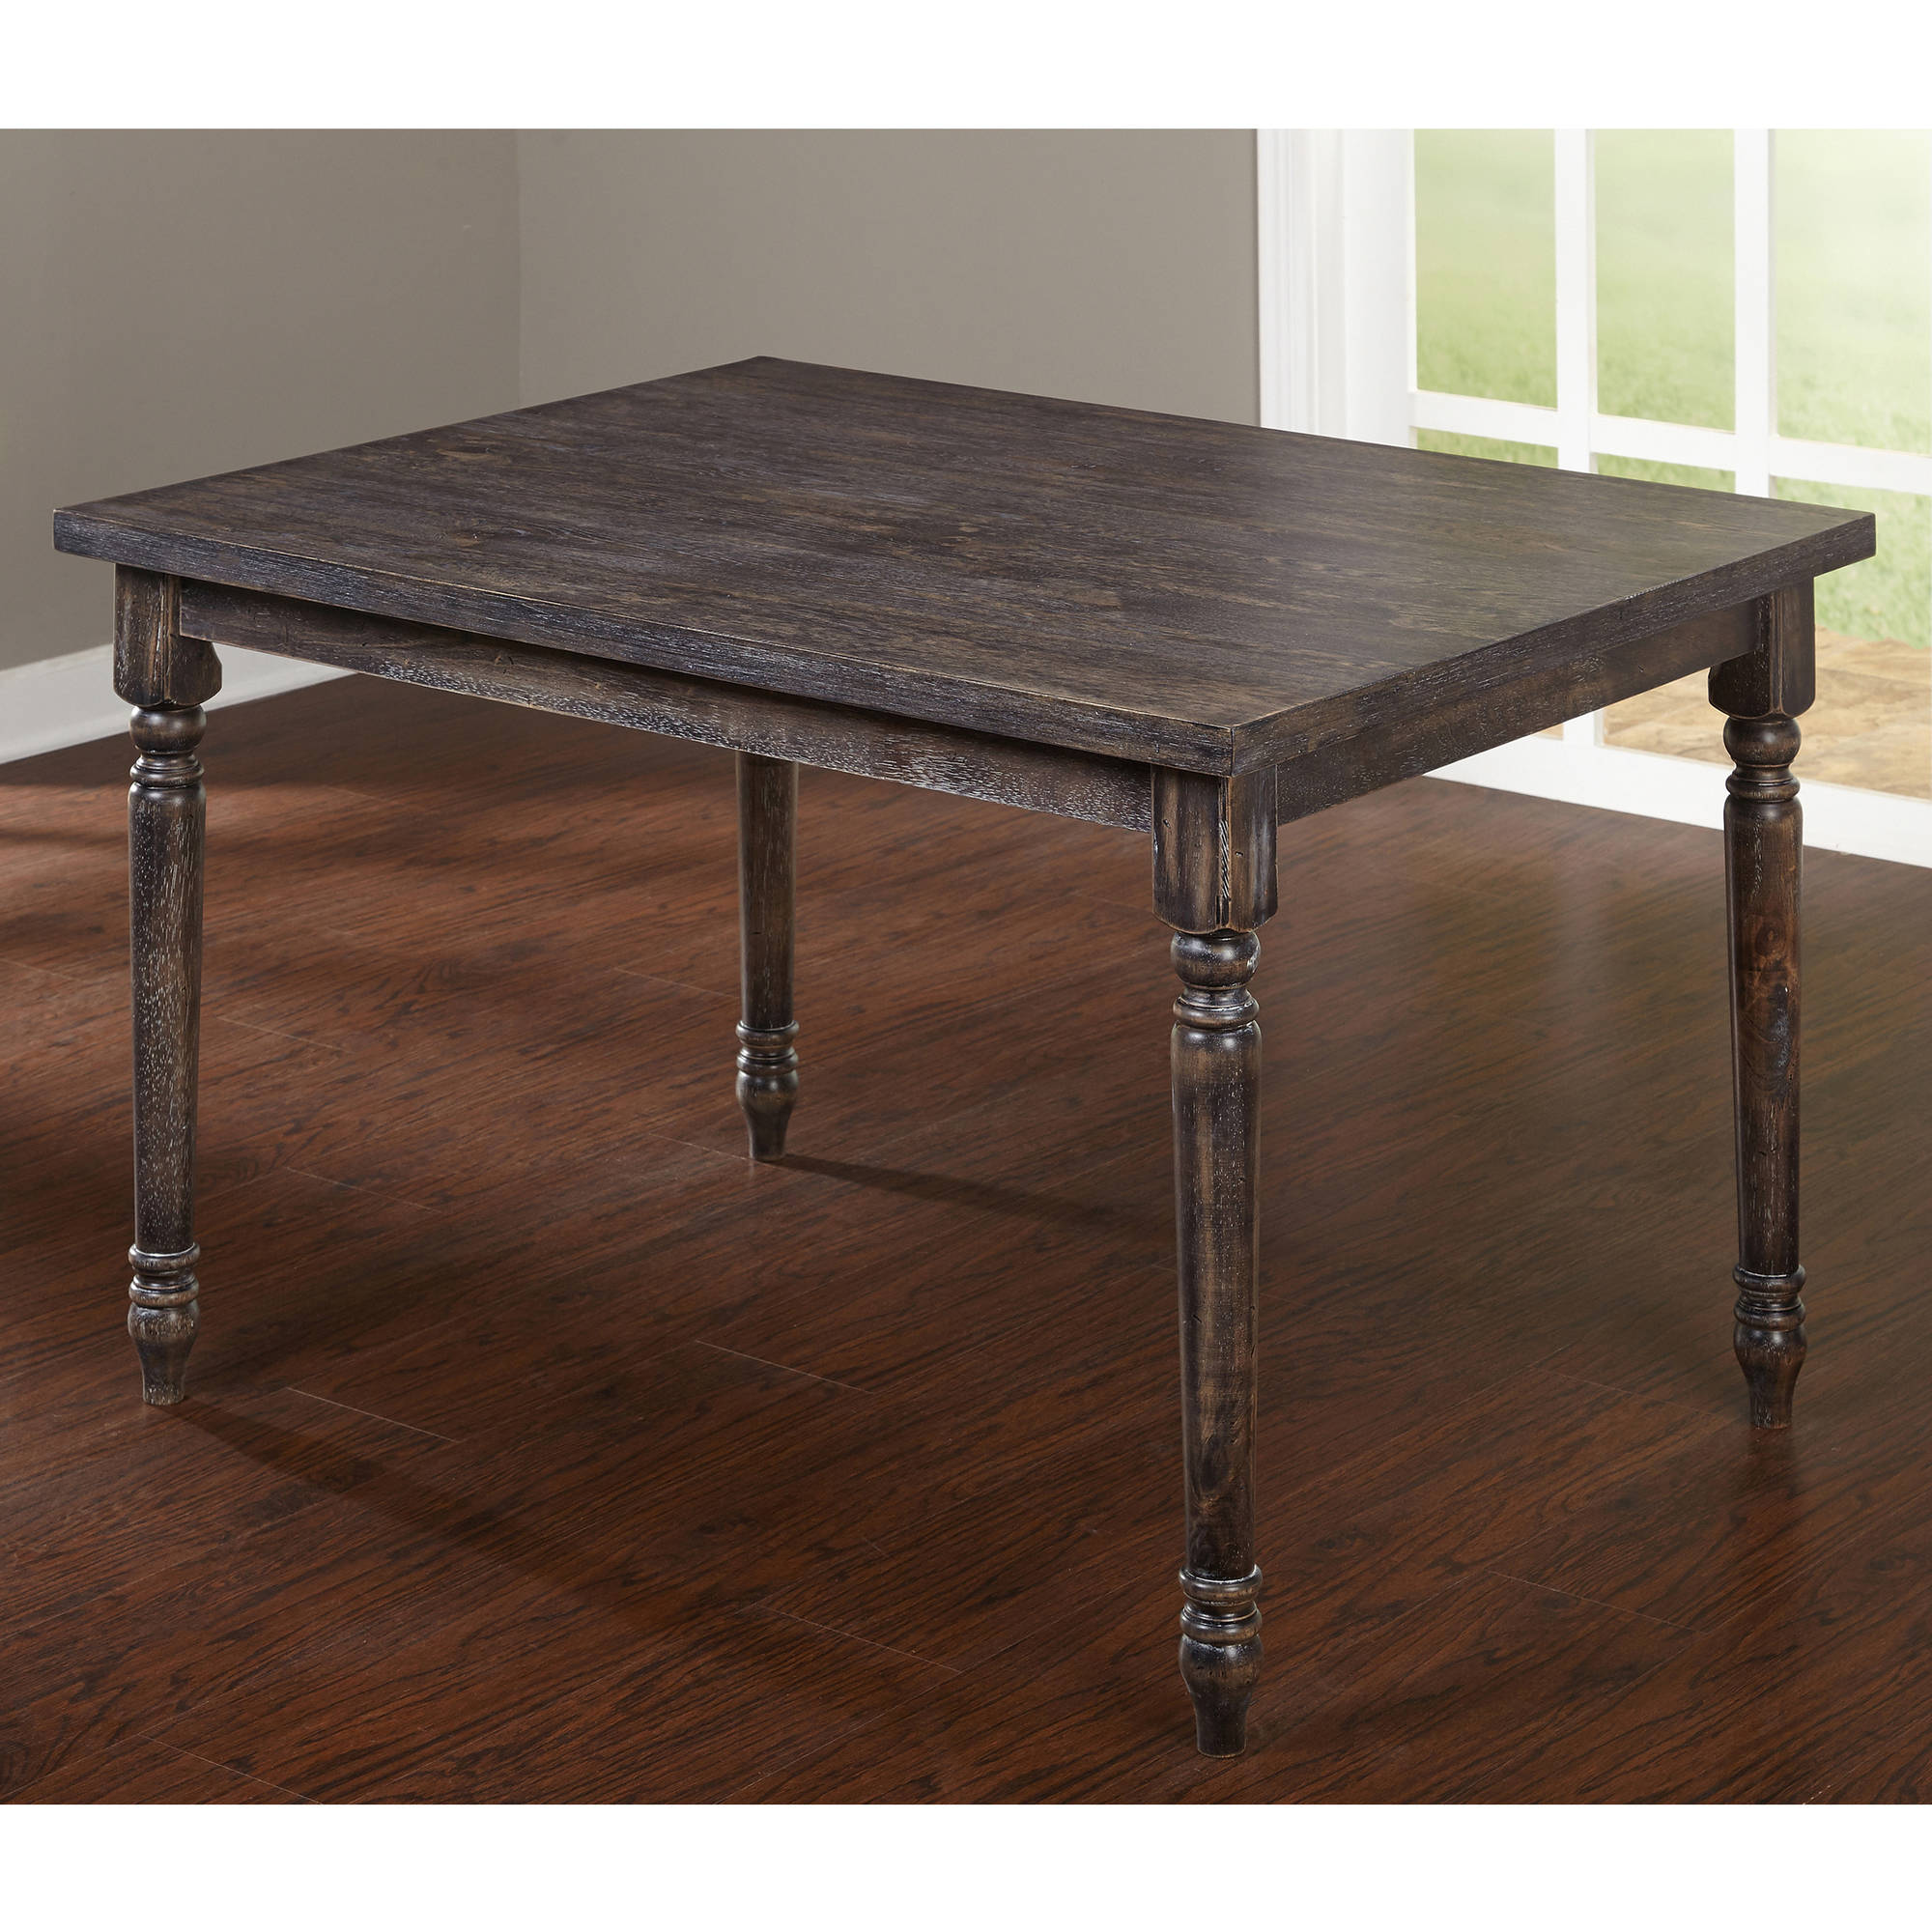 Arena Burntwood Dining Table by